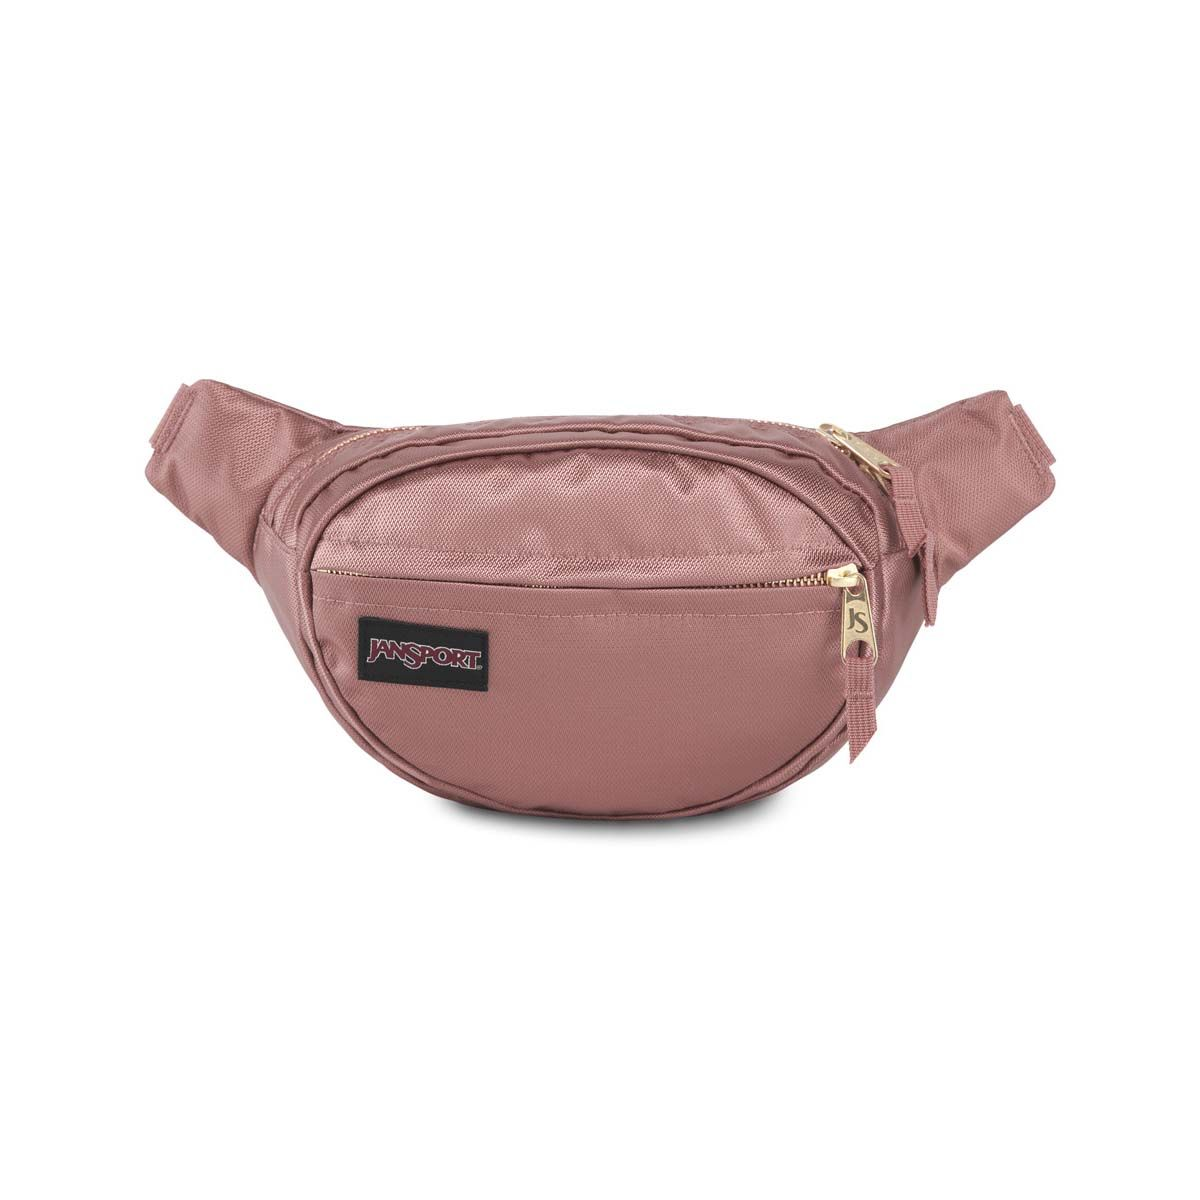 JanSport Fifth Ave FX Fanny Pack in Mocha Gold Premium Poly